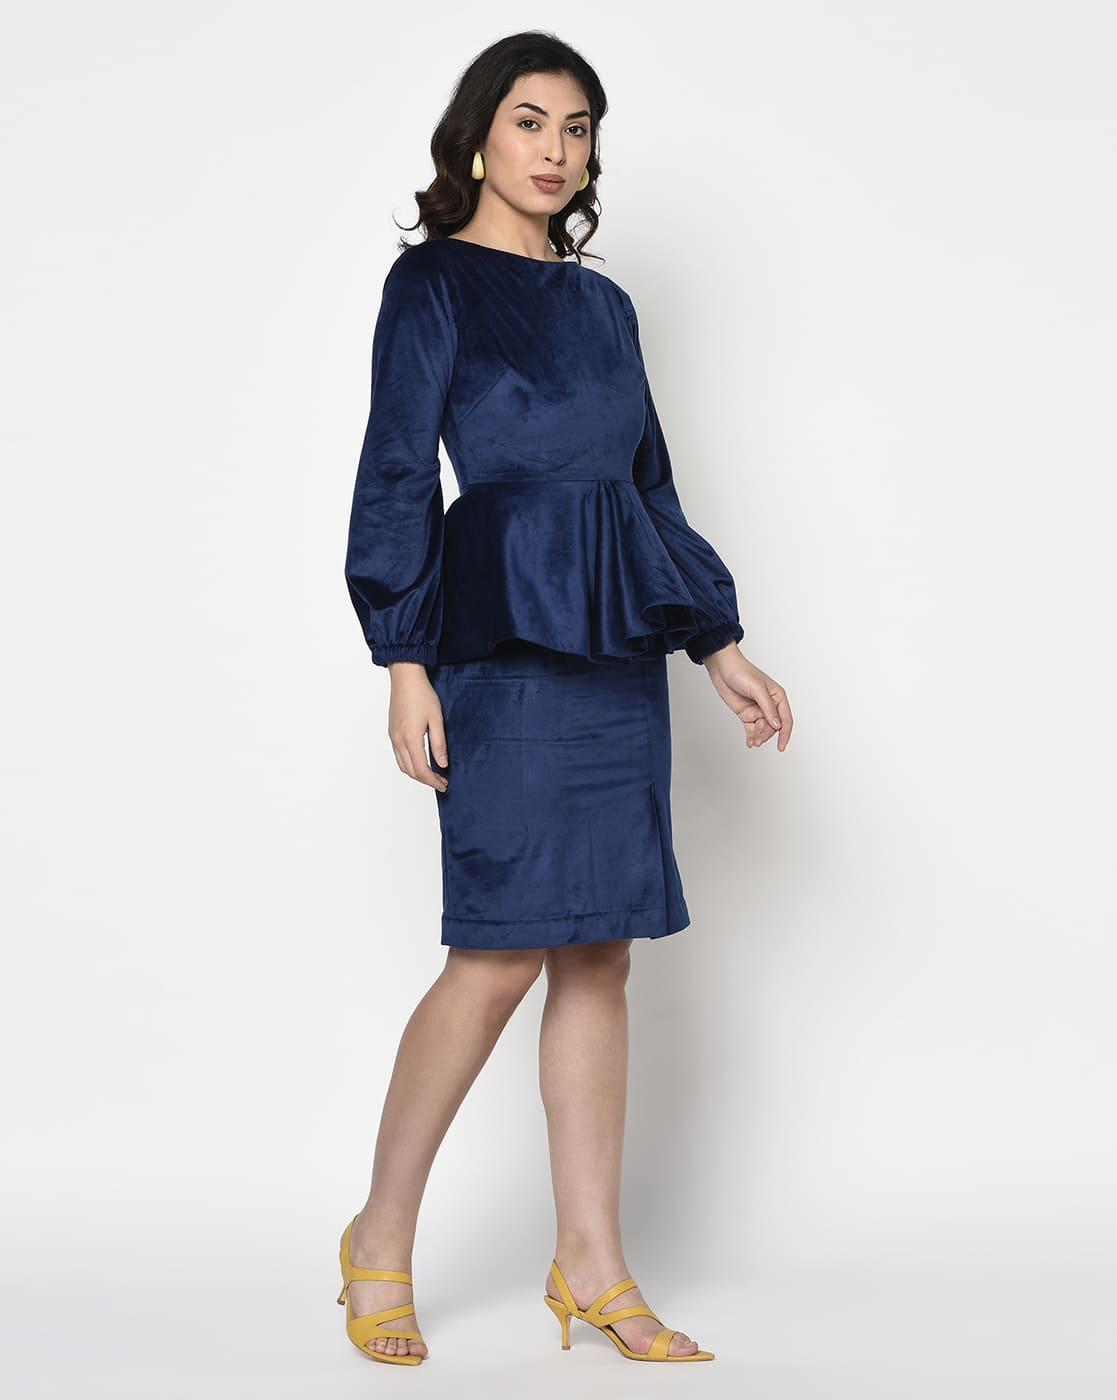 Blue Velvet Peplum Dress